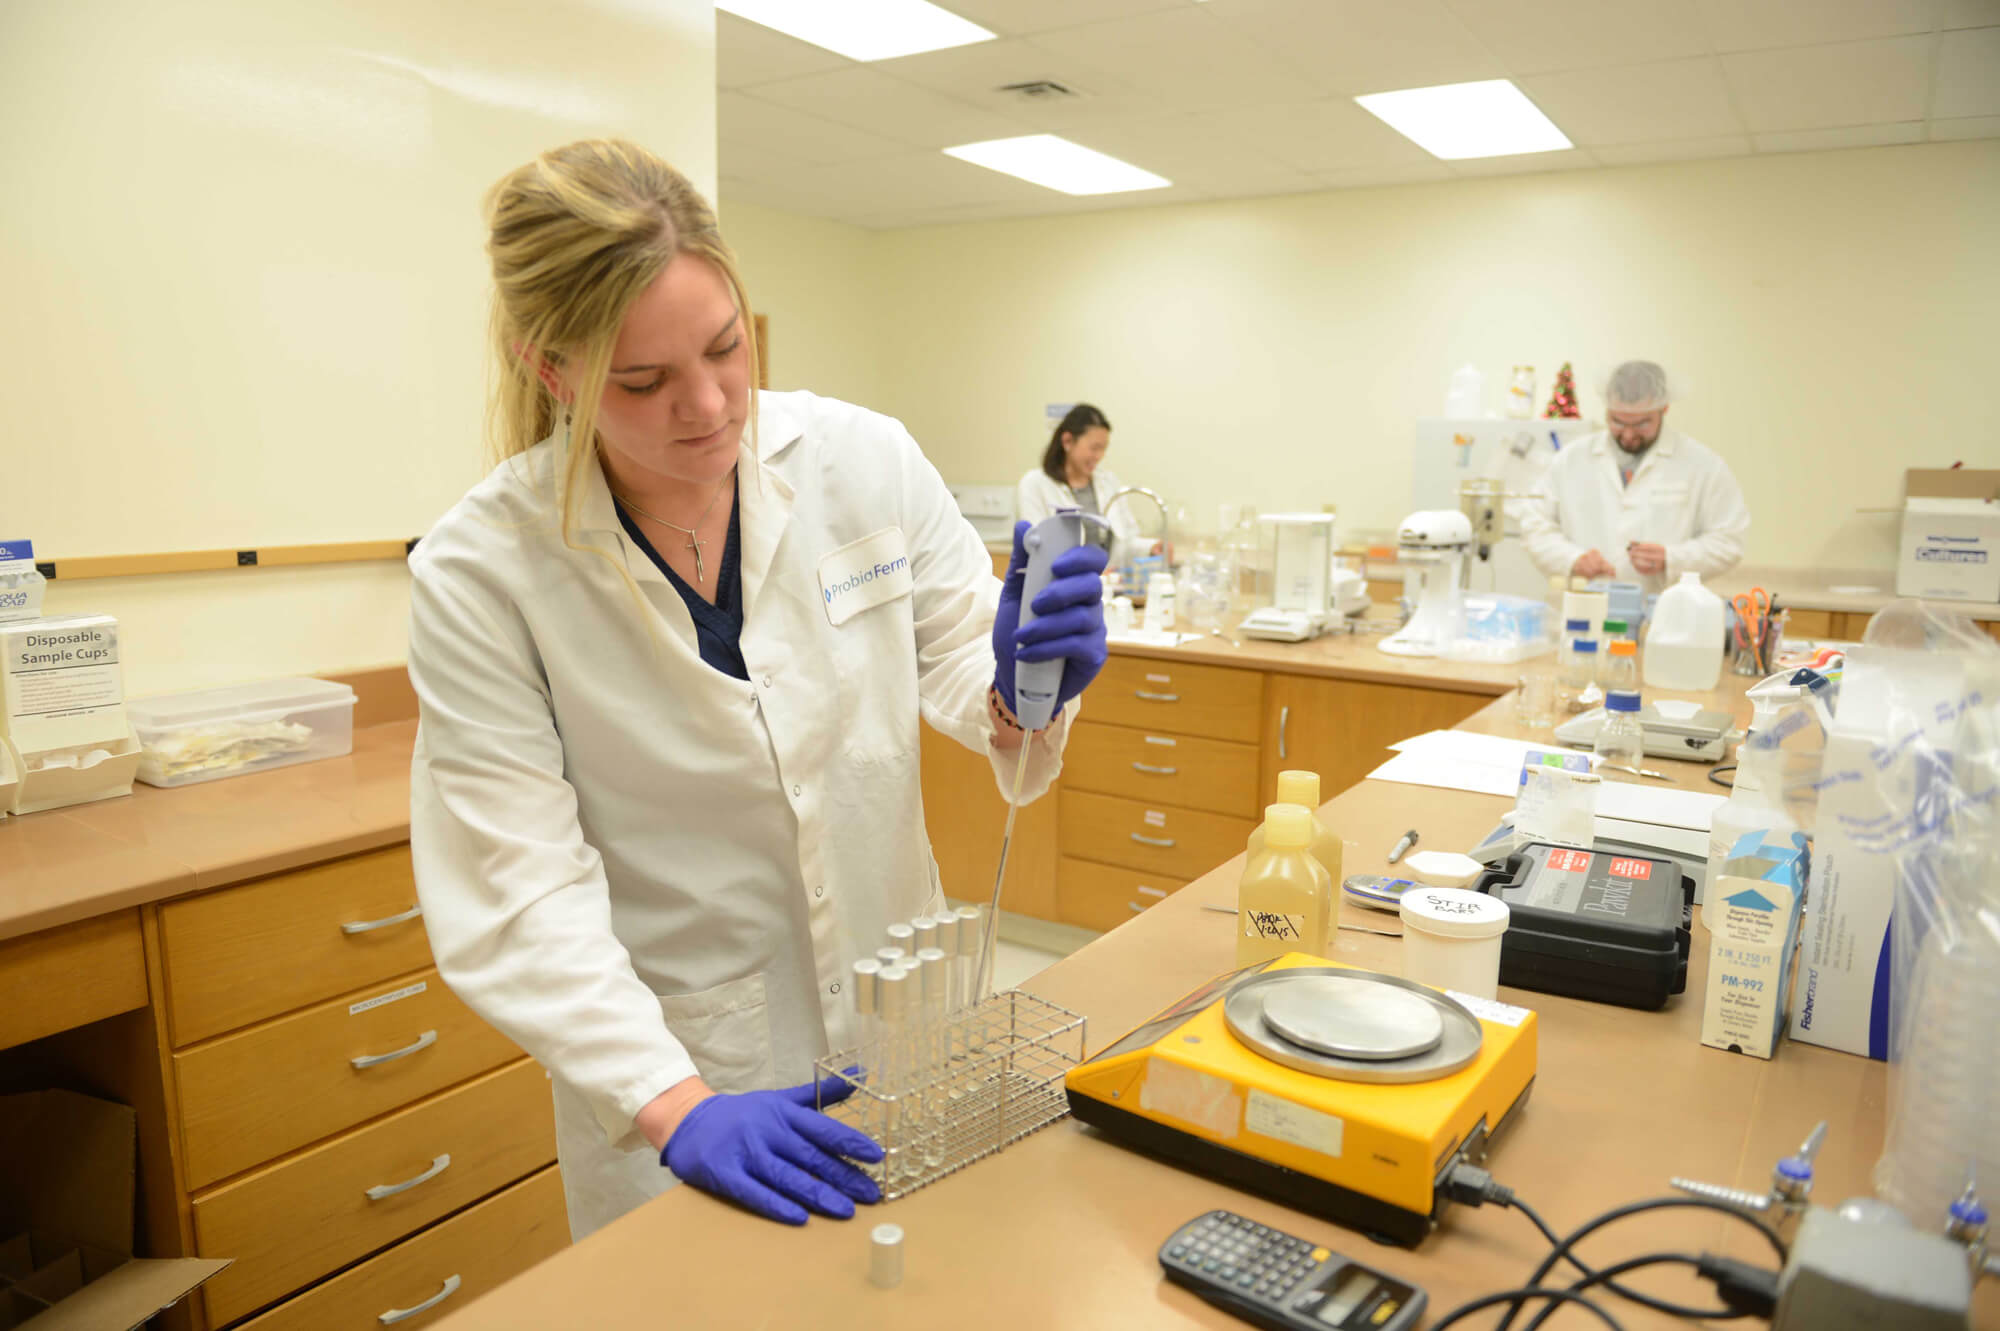 A woman in a lab coat utilizes vials.